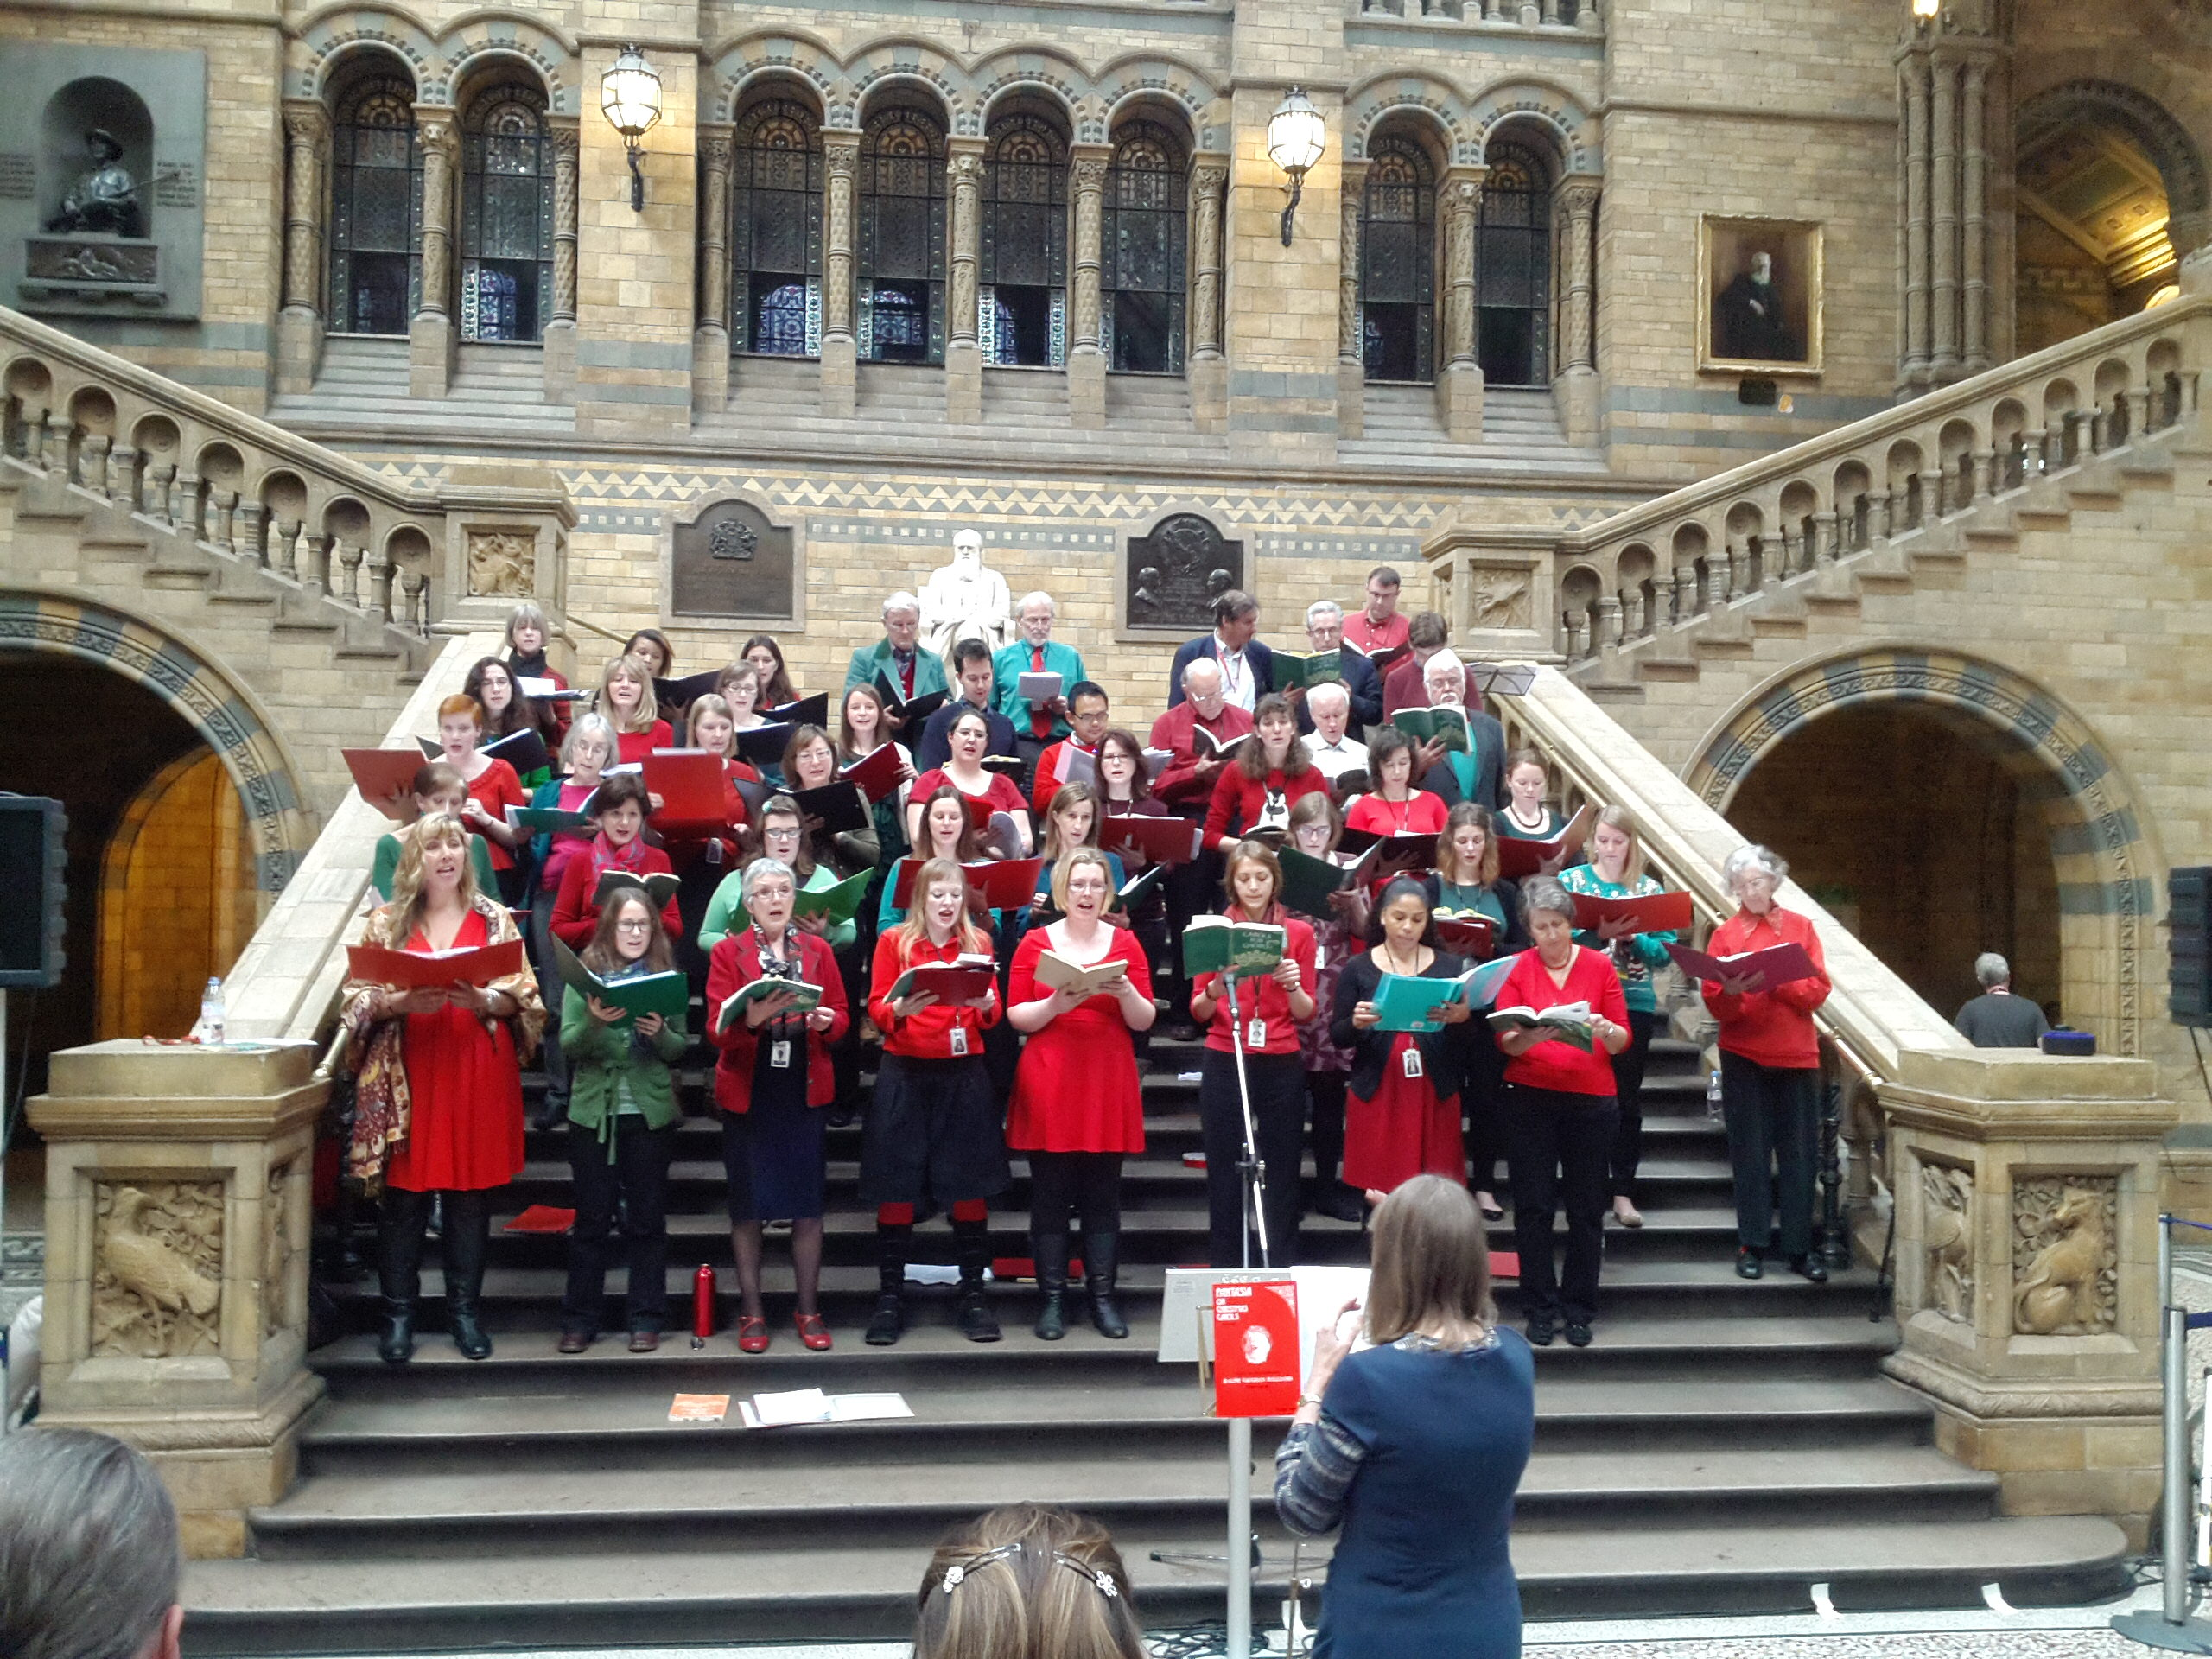 A_choir_of_Natural_History_Museum,_Science_Museum_and_Victoria_and_Albert_Museum_staff_members_sing_carols_in_the_central_hall_of_the_Natural_History_Museum_02